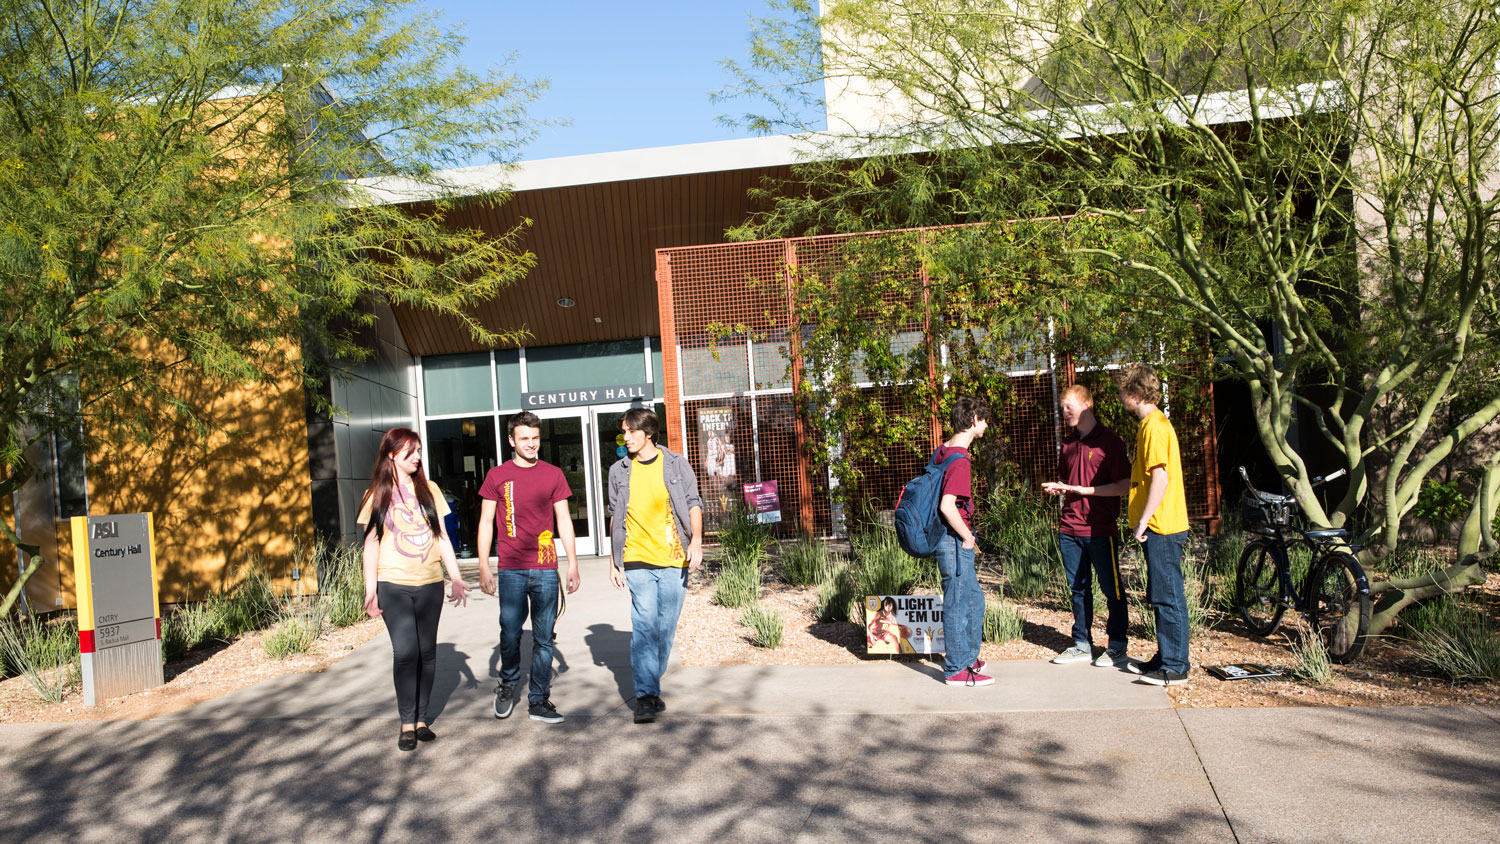 Students standing in front of Century Hall at the Polytechnic campus at ASU